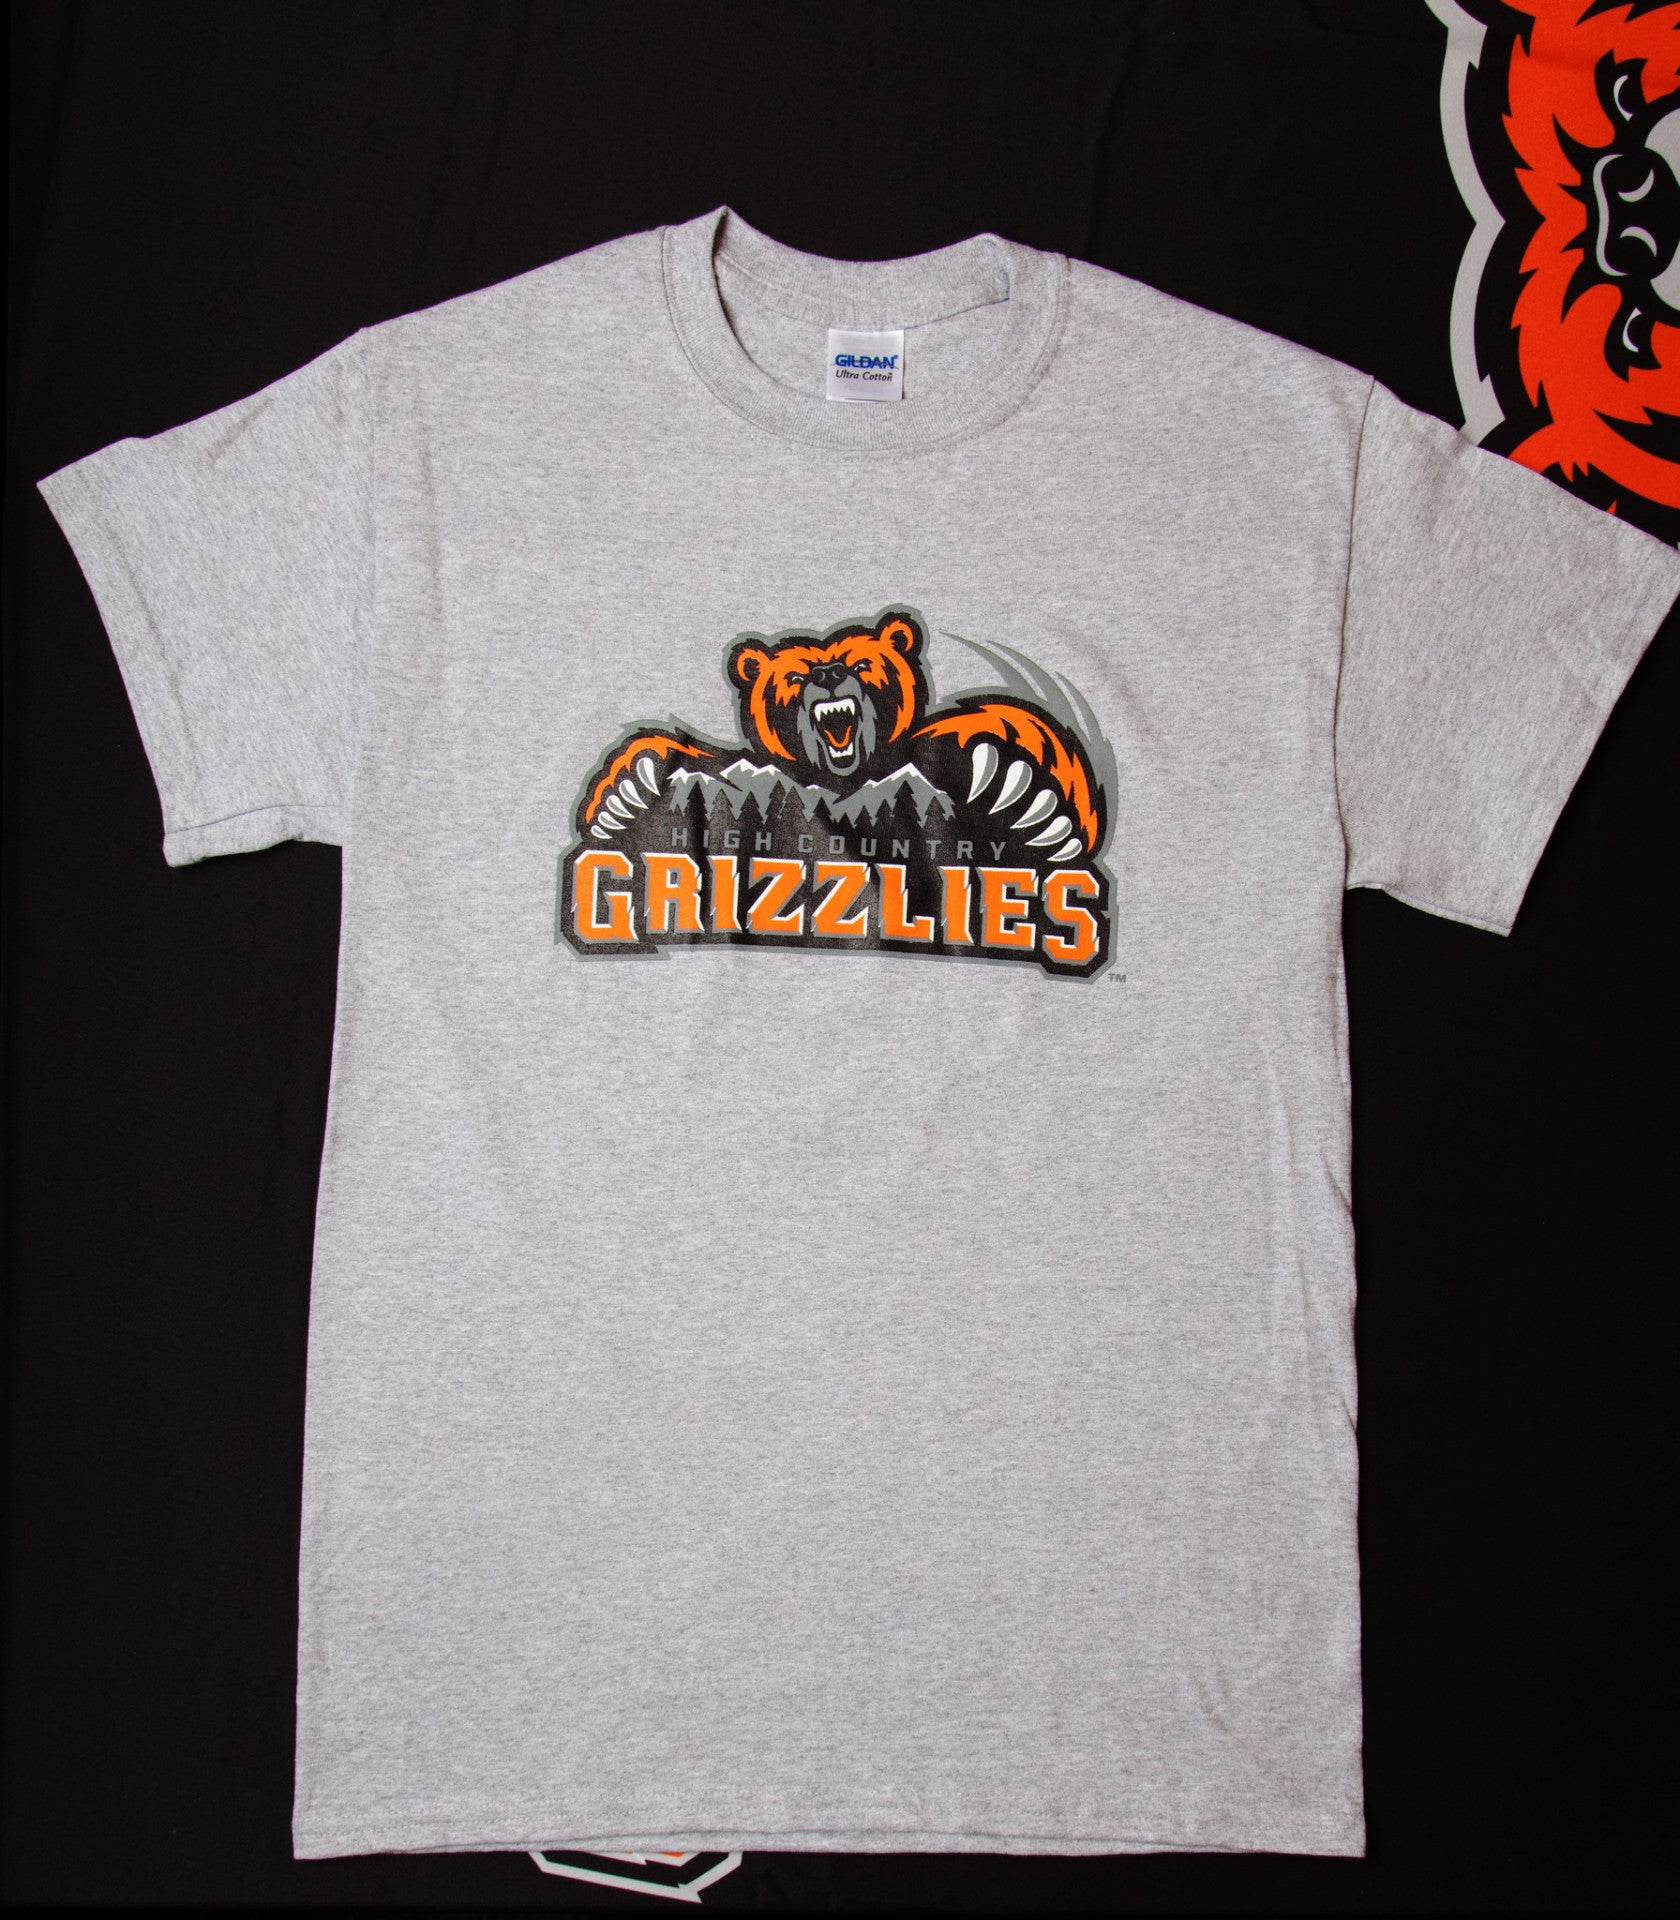 High Country Grizzlies Short Sleeve T-Shirt- Grey